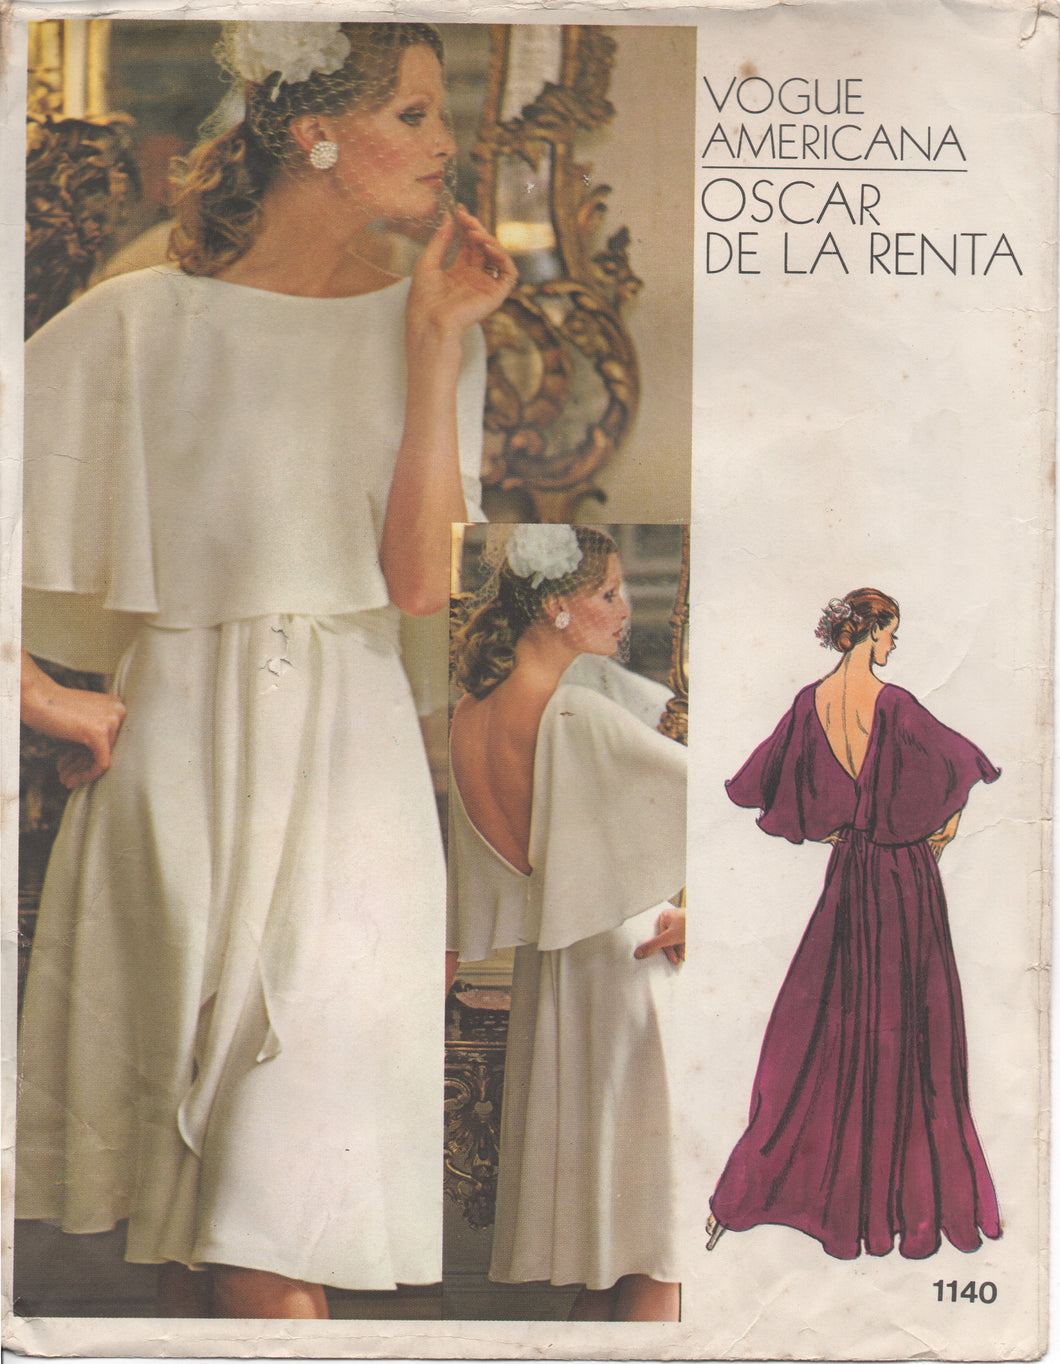 1970's Vogue Americana Oscar de la Renta Evening Gown with Cape sleeves- Bust 36